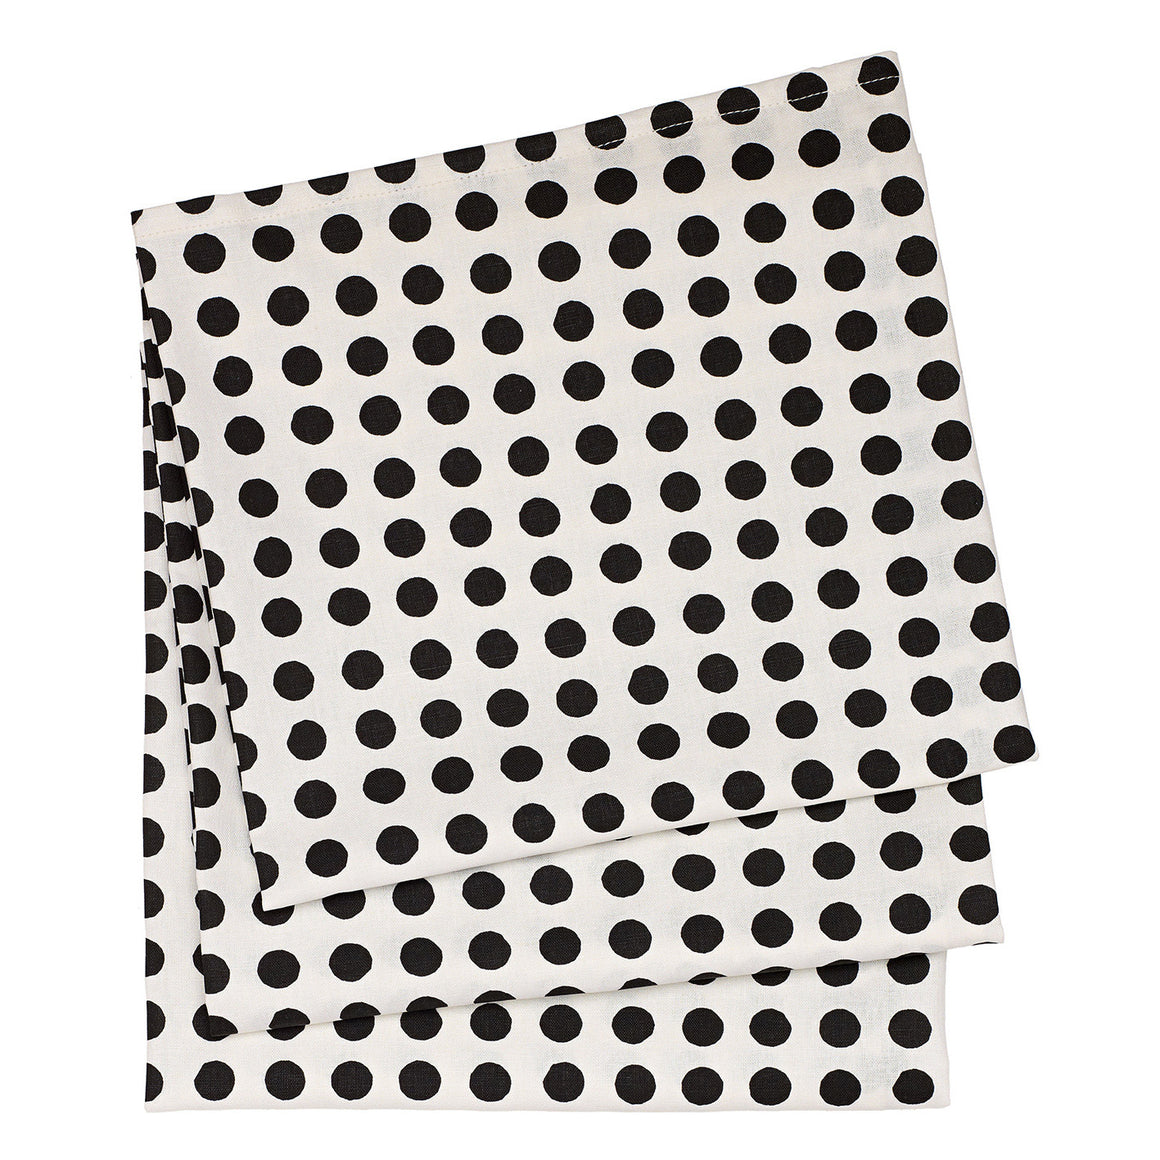 London Polka Dot Cotton Linen Tablecloth in Black